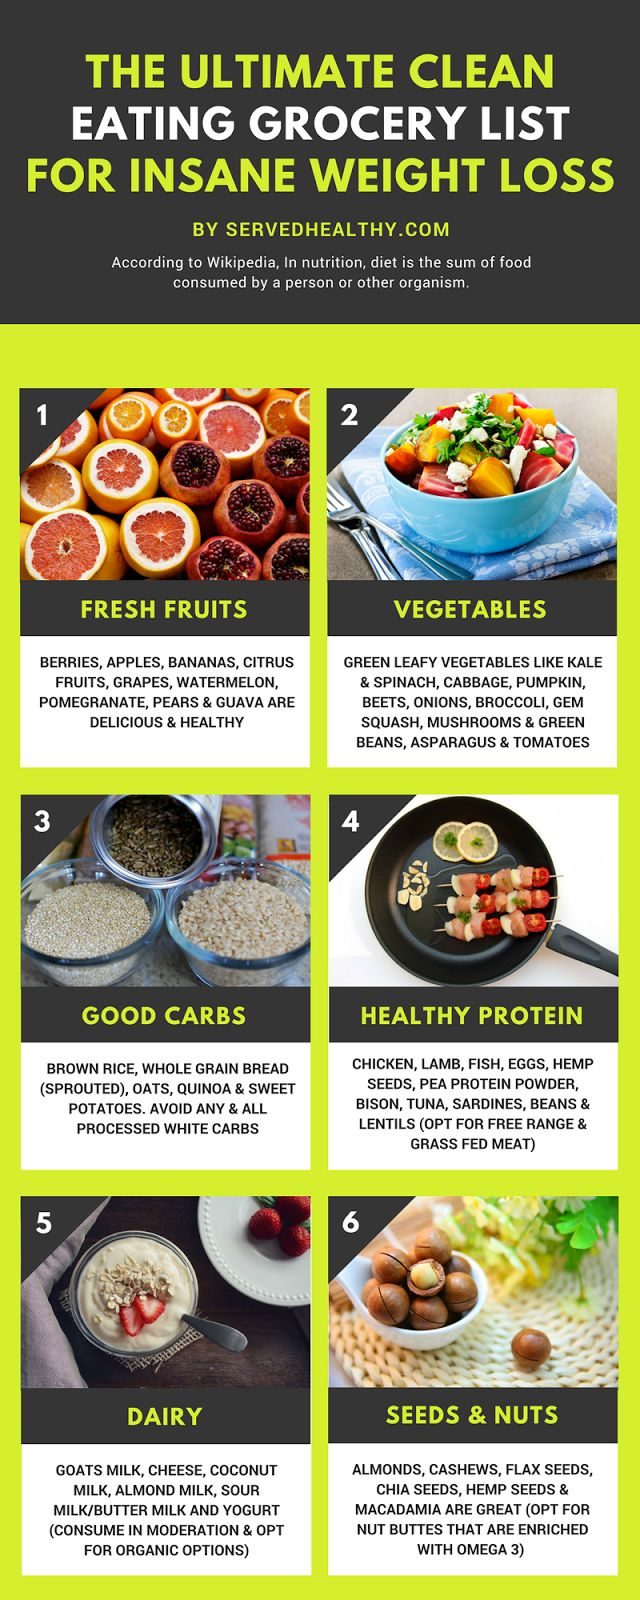 Let's go over the fundamental principles of weight loss and then a clean eating grocery list for insane weight loss and superb results! If you want to transform your body and health all at the same time, this post is for you!